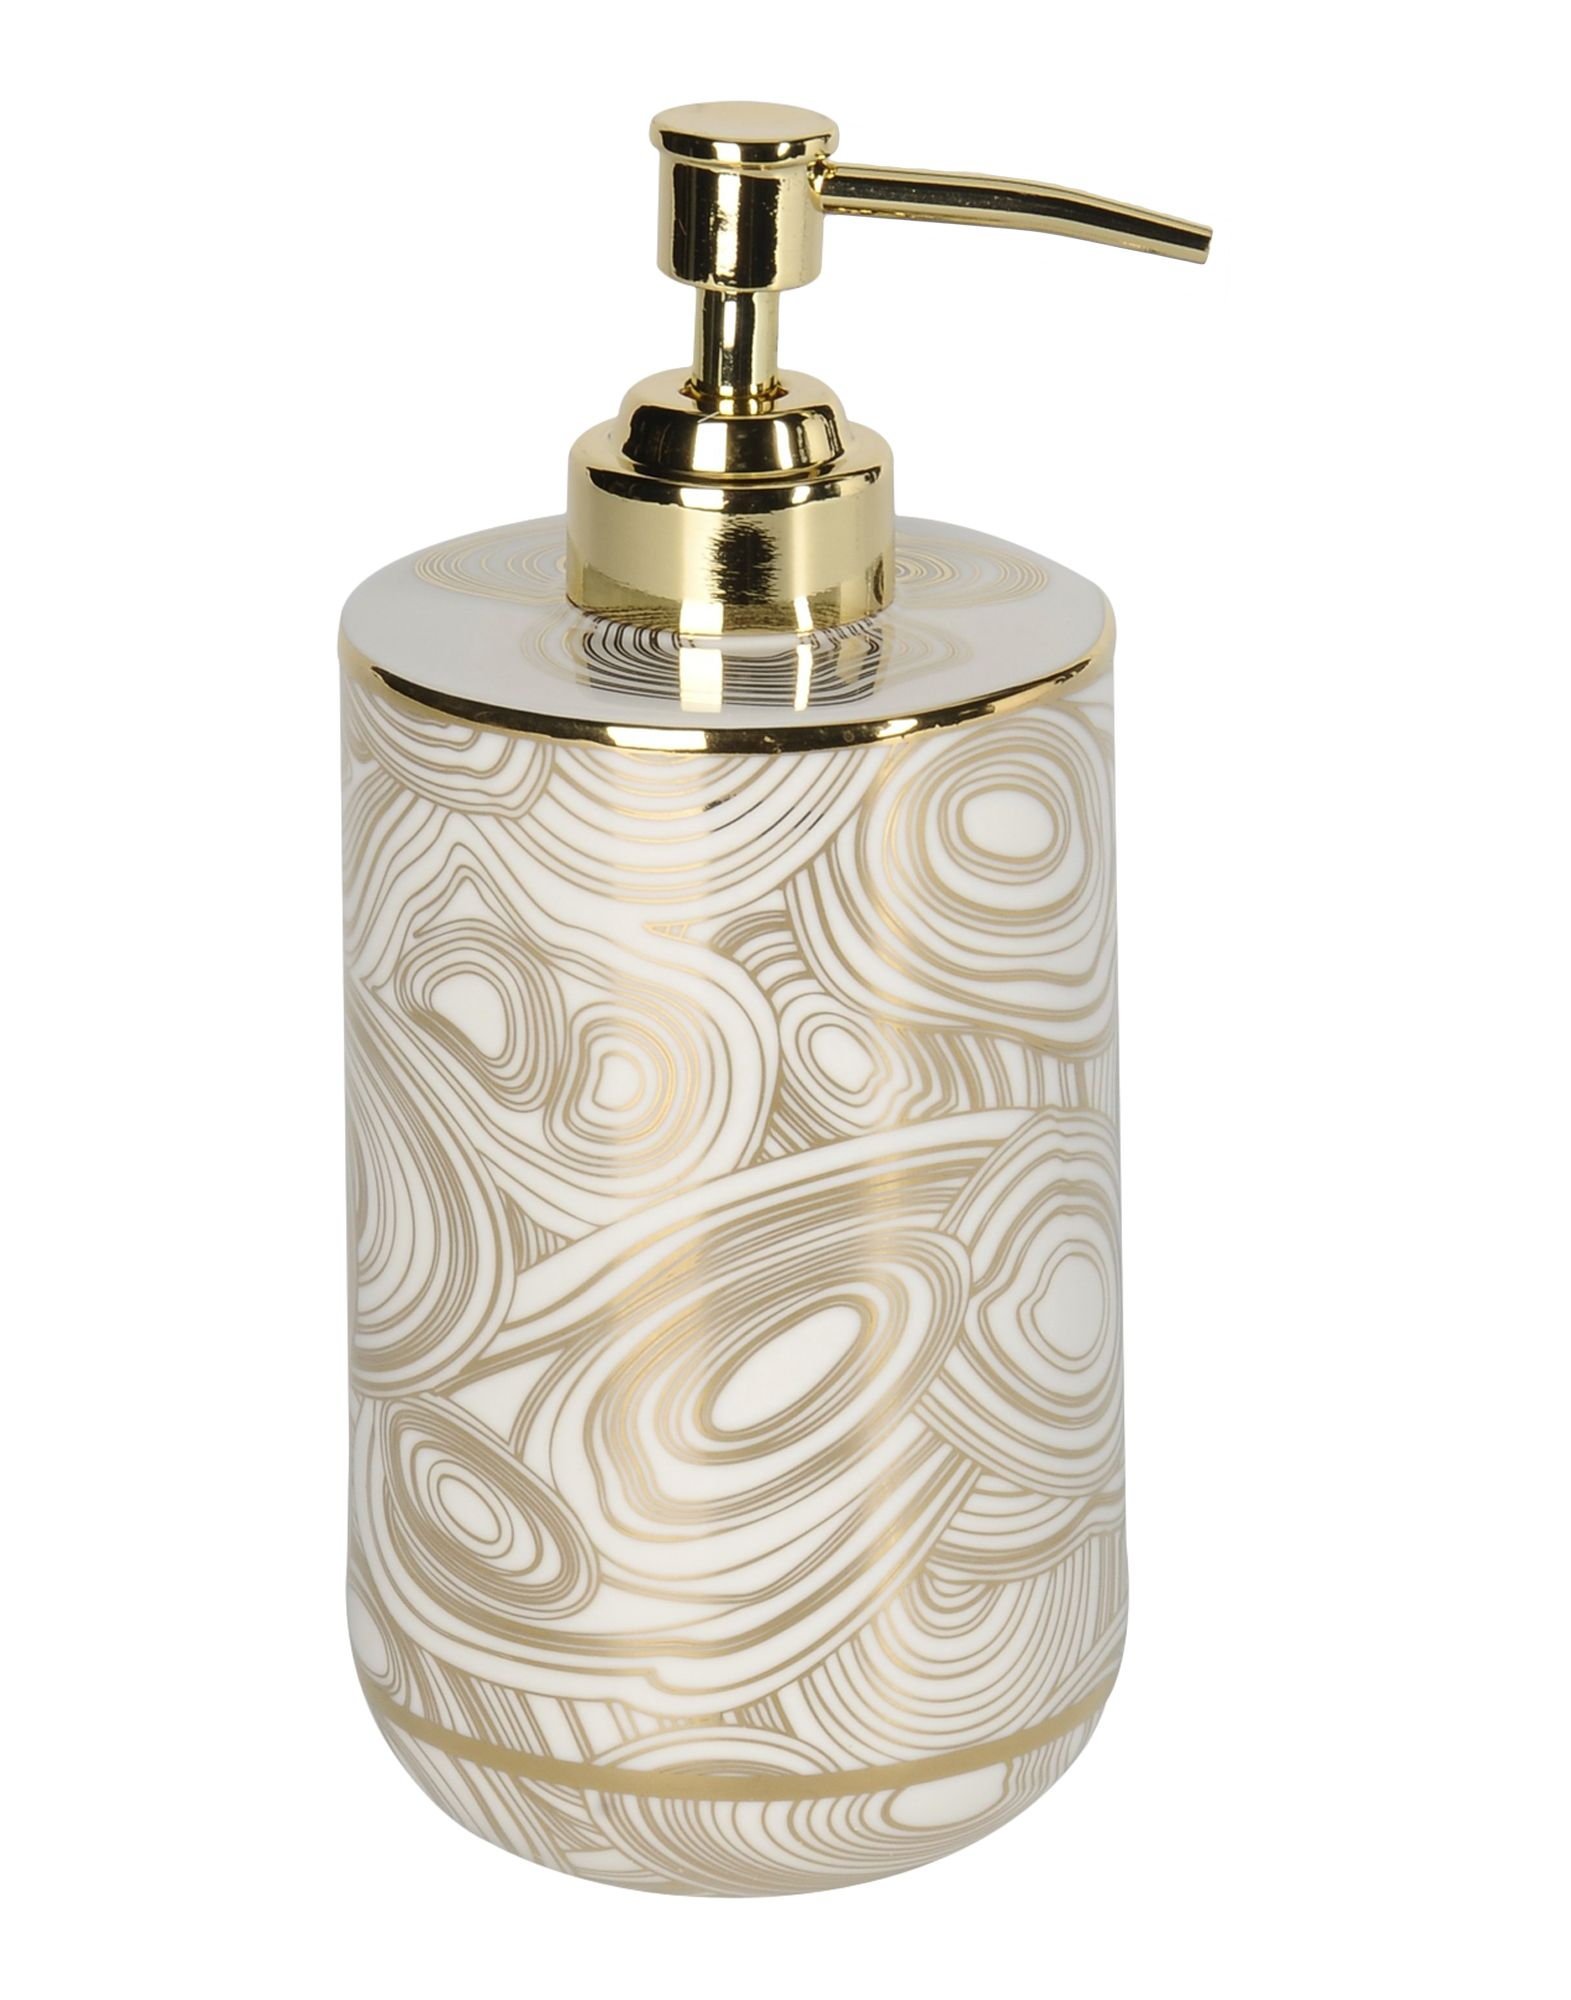 Jonathan Adler Bathroom Accessories